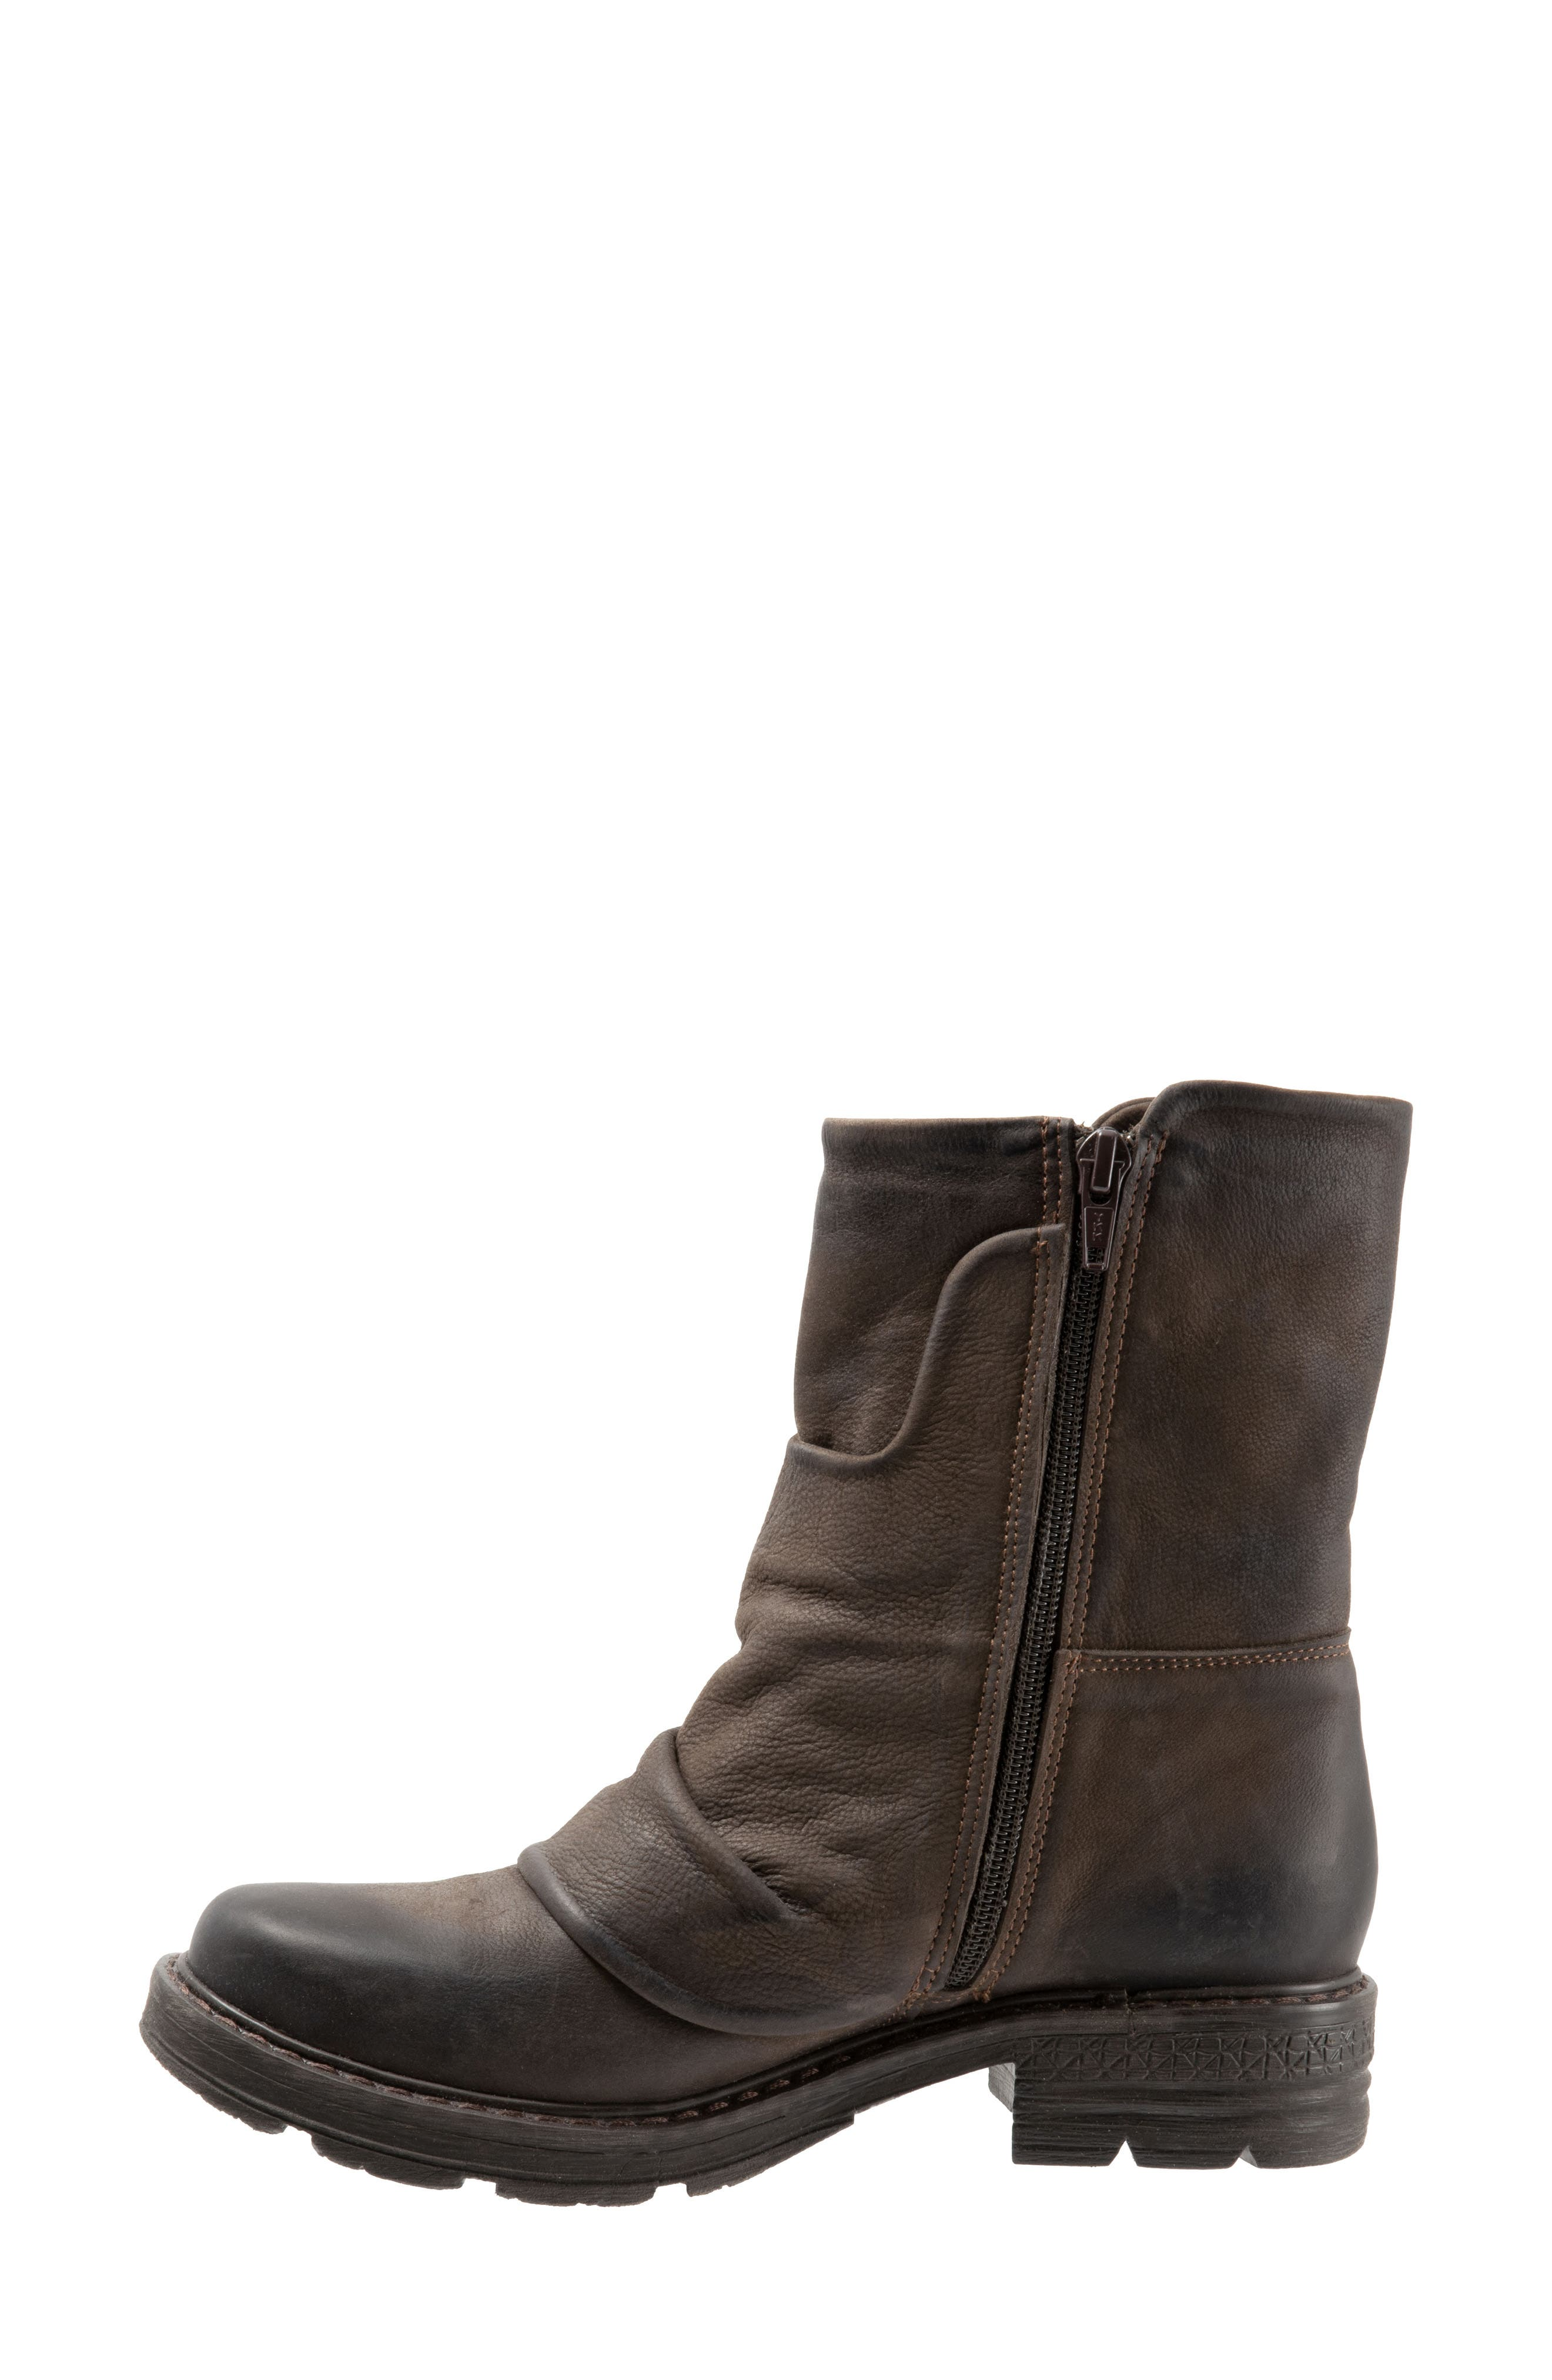 Greta Boot,                             Alternate thumbnail 9, color,                             BROWN NUBUCK